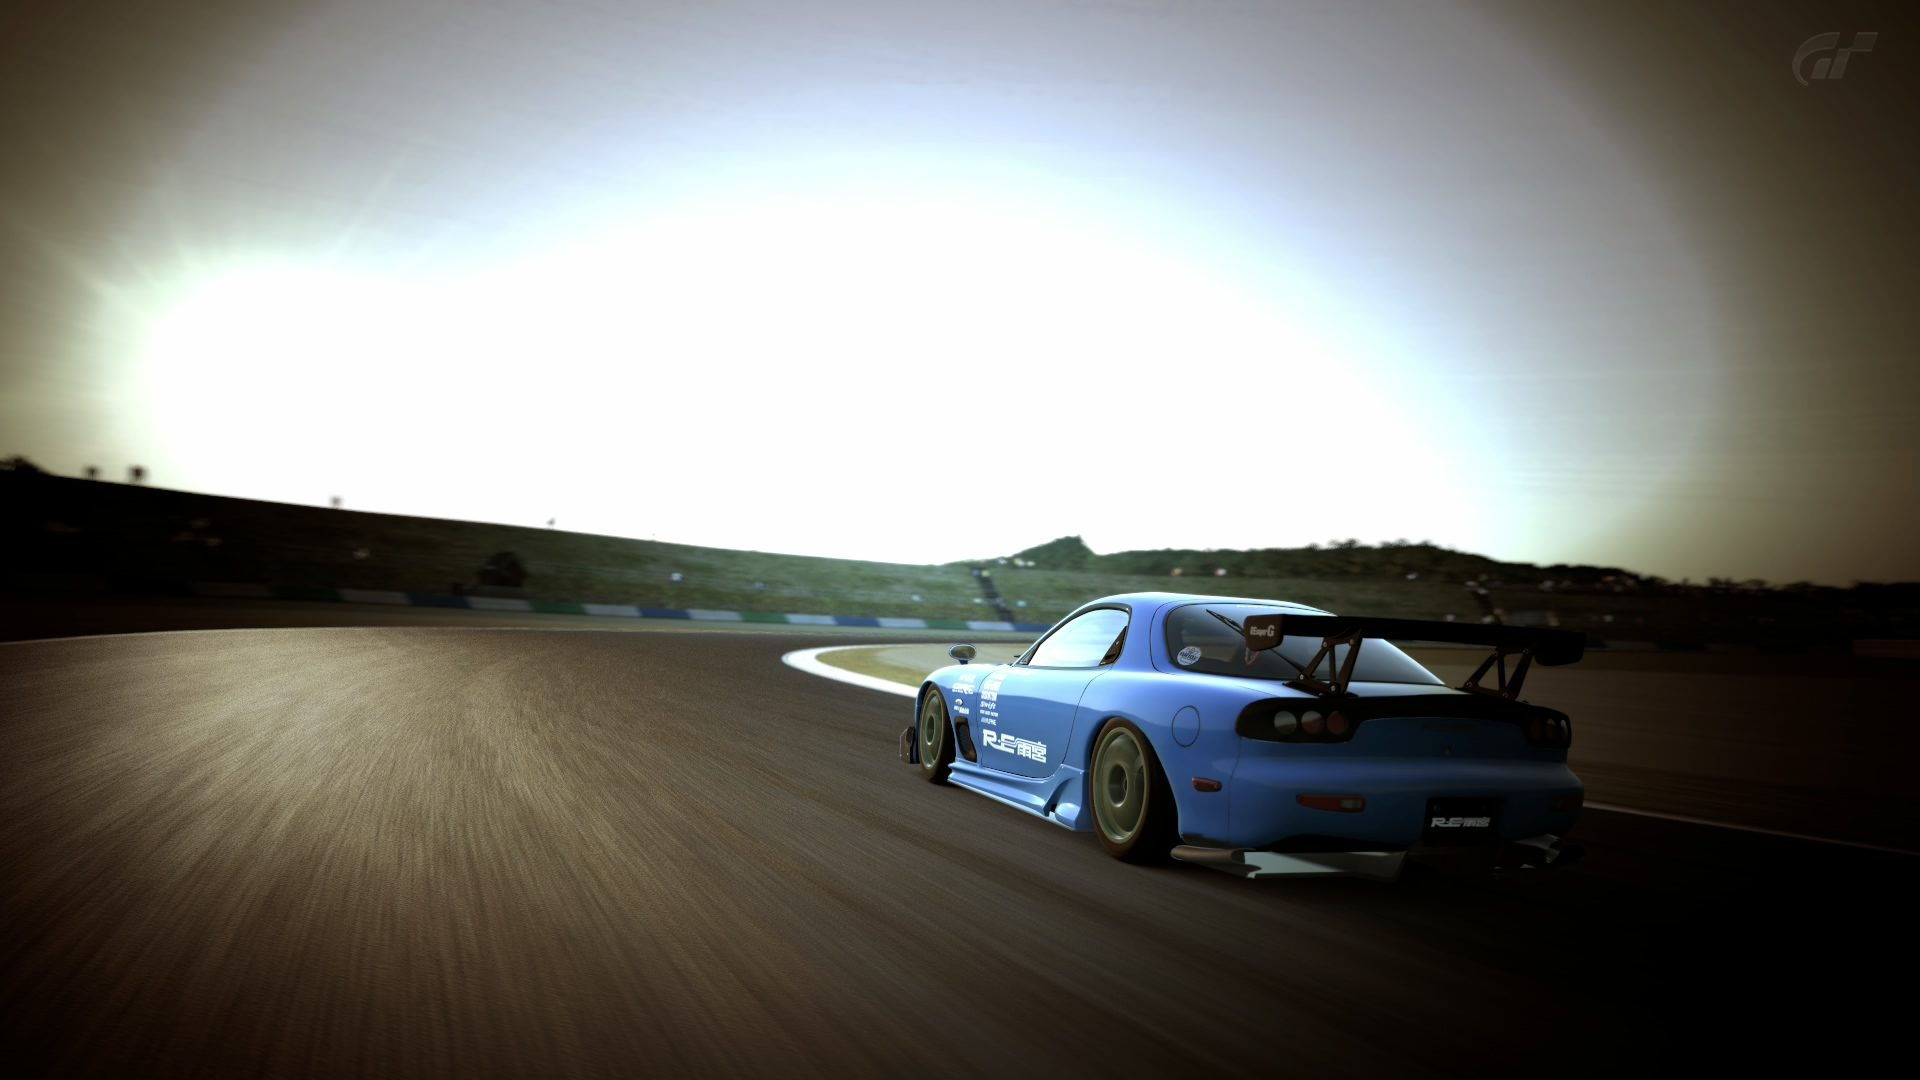 rx7Twin Ring Motegi Road Course_4.jpg